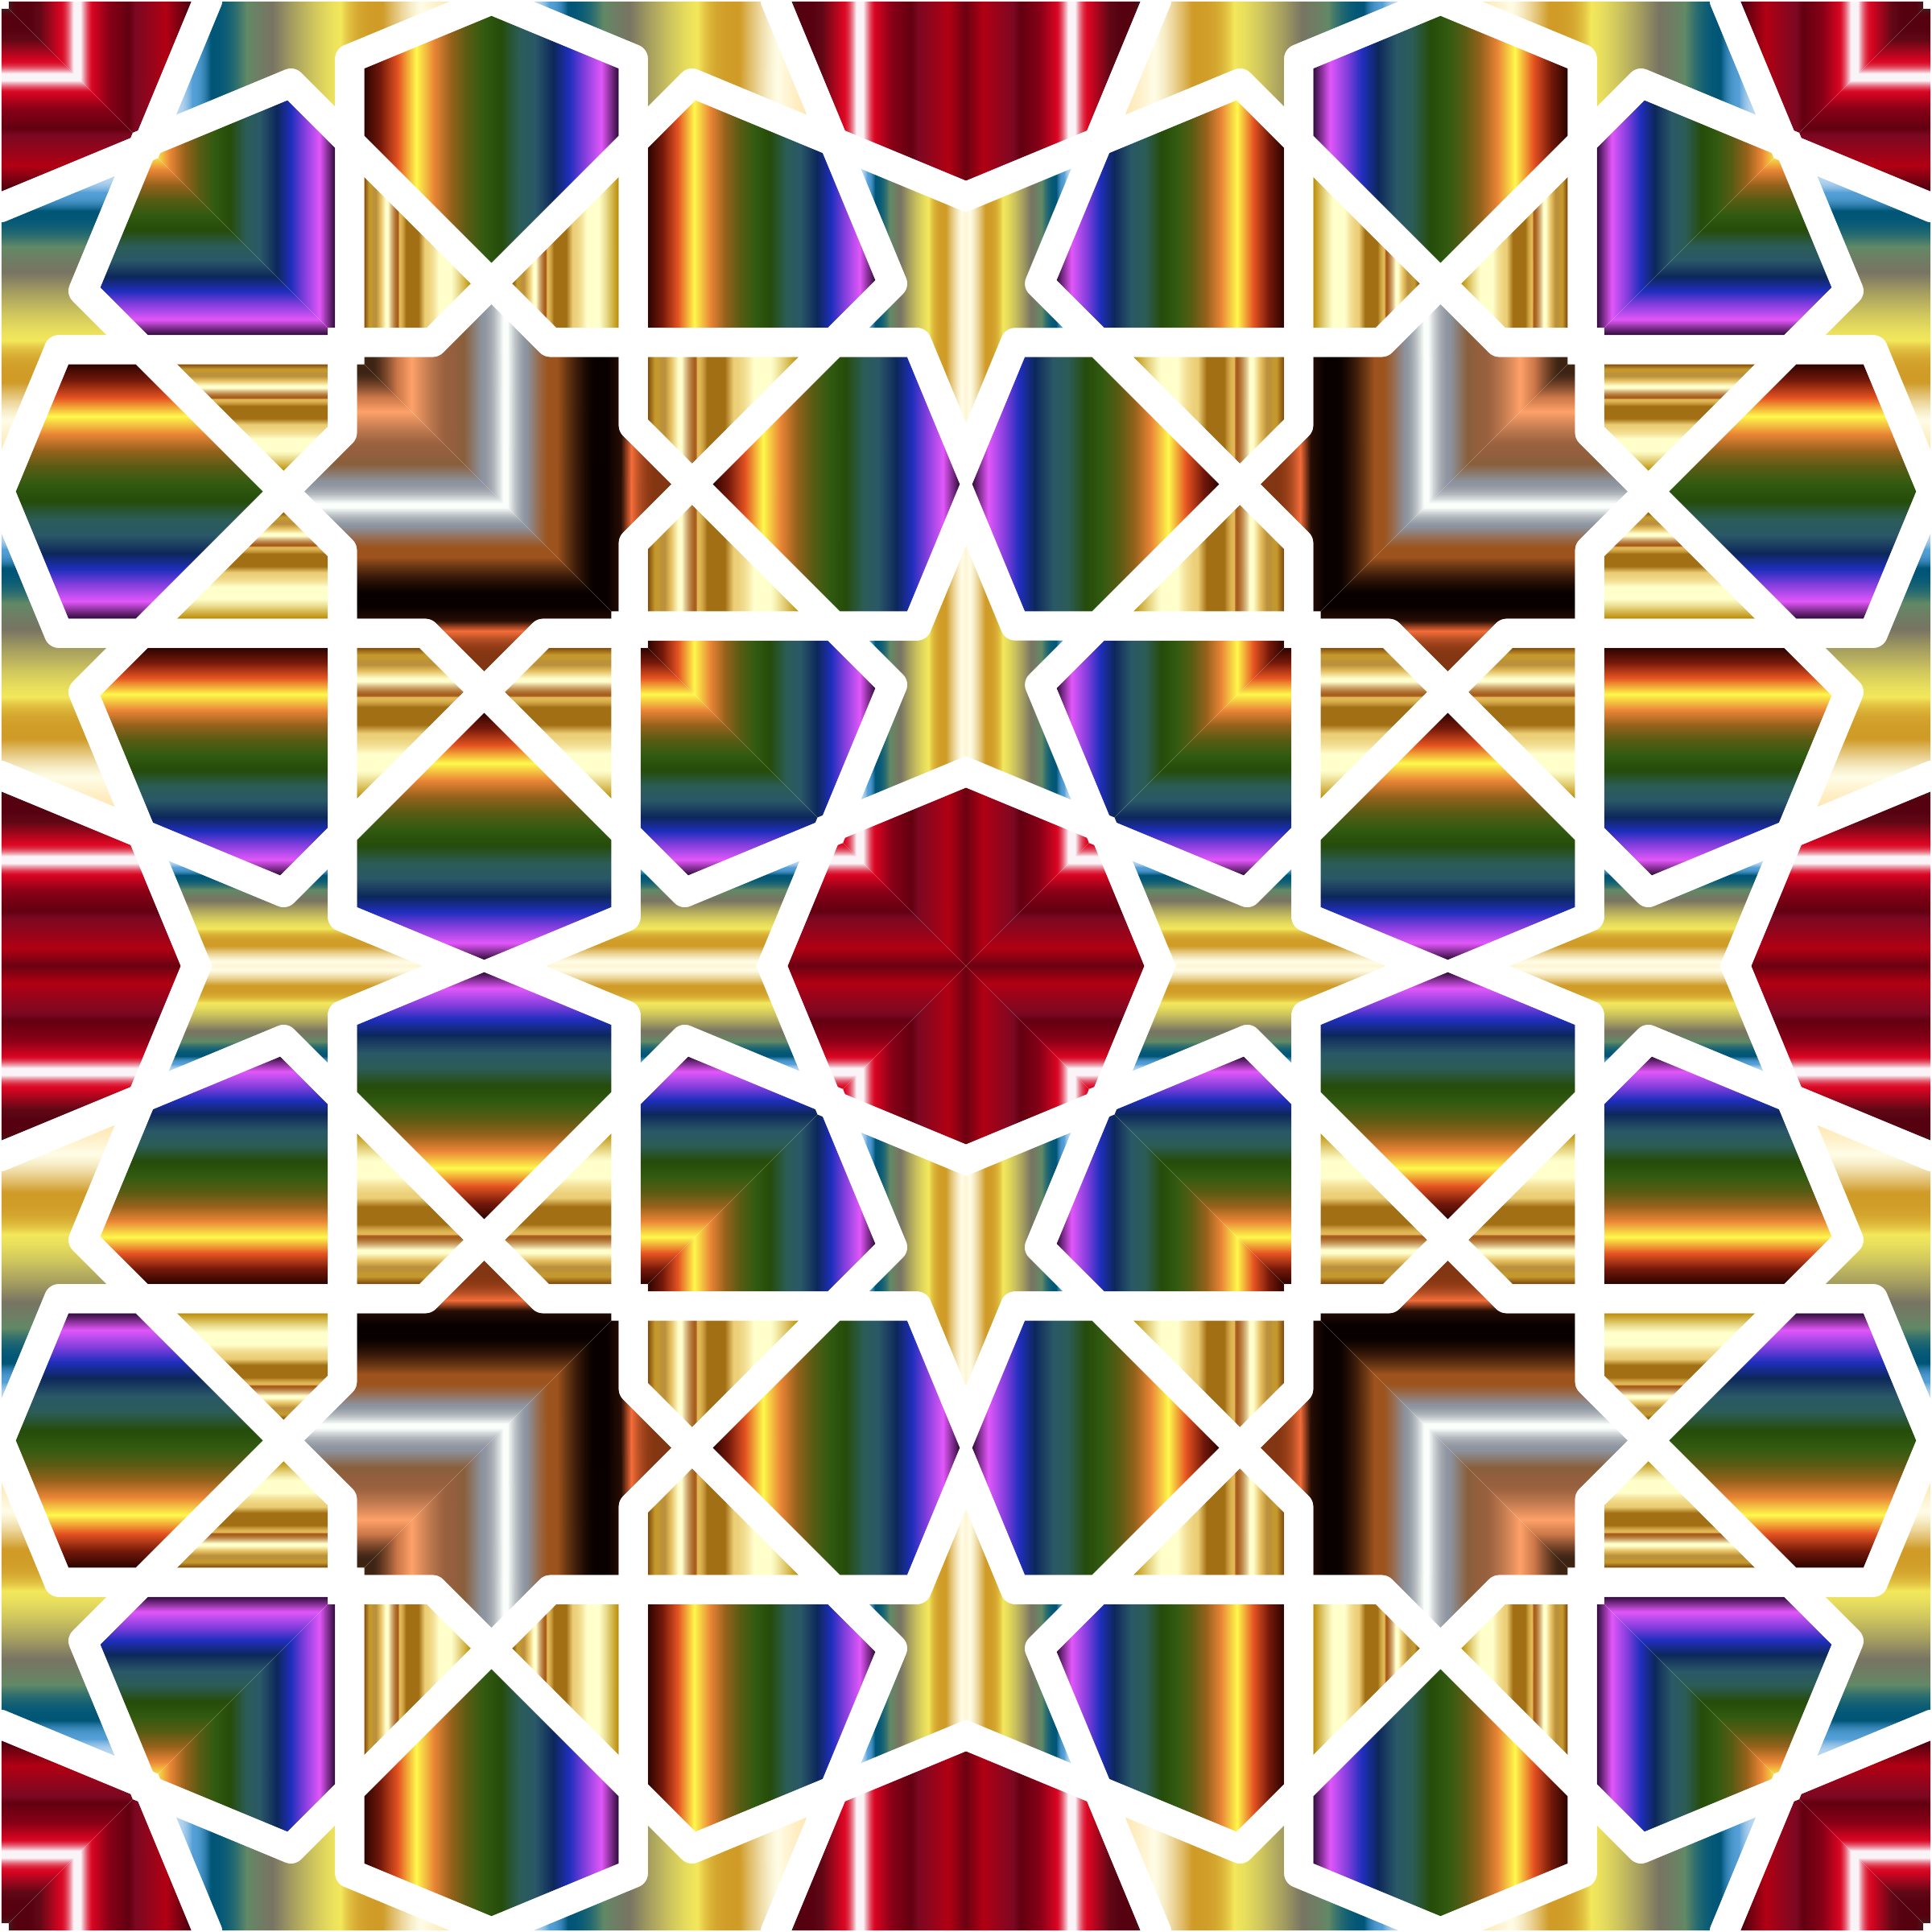 Islamic Geometric Tile 8 by GDJ